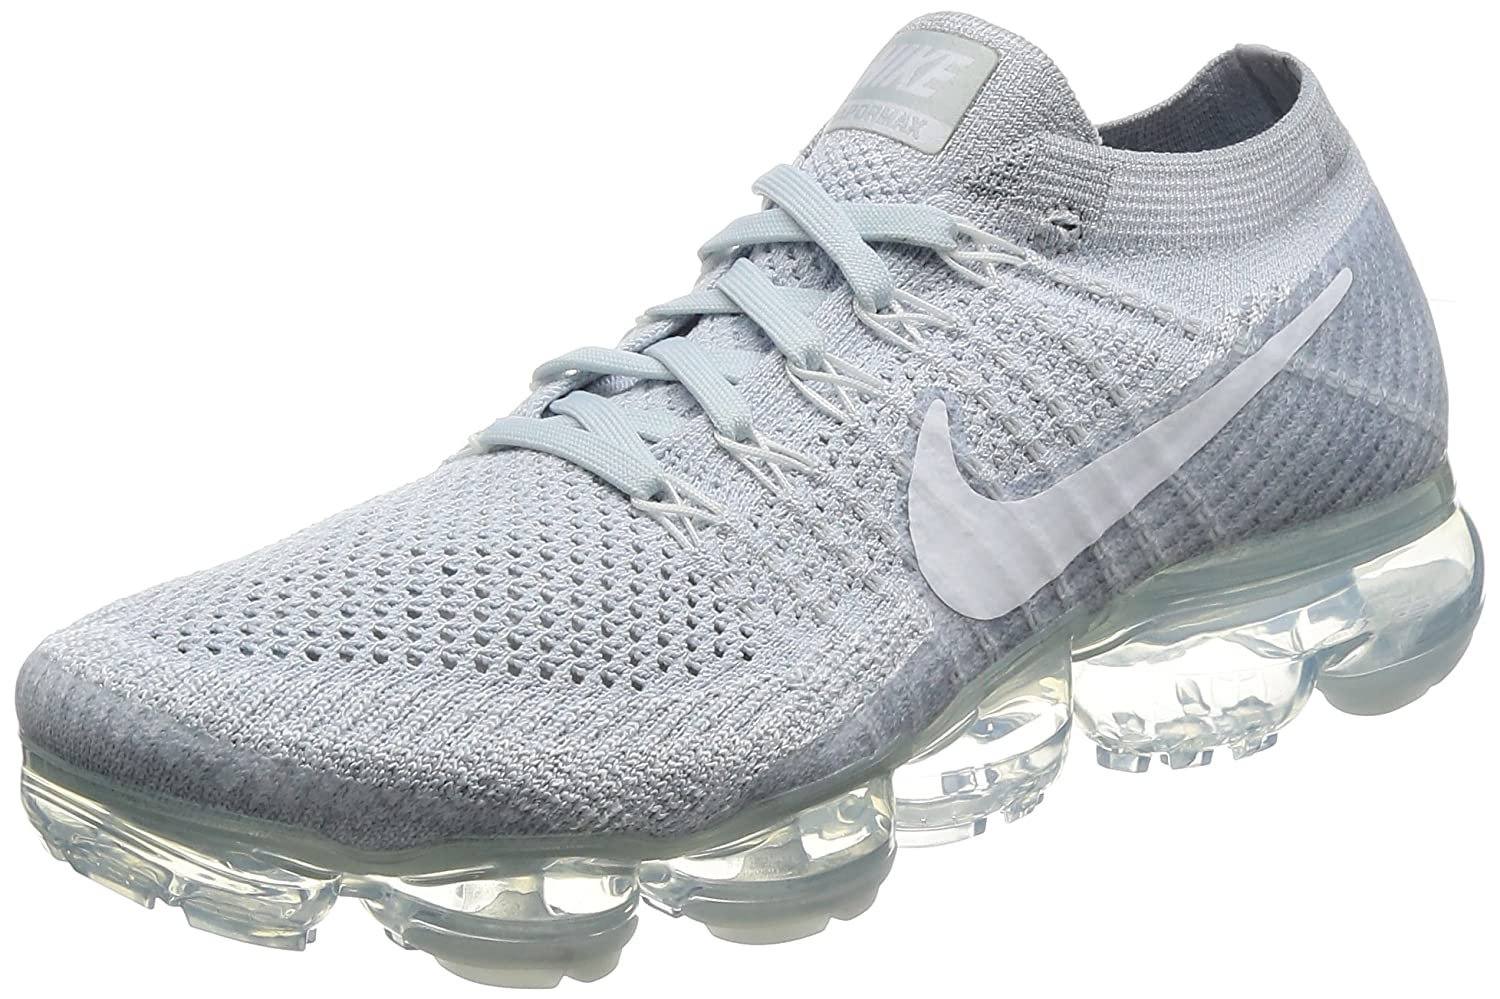 best cheap 4ea8b 4249b Amazon.com   Men s Nike Air Vapormax Flyknit Running Shoe   Fashion Sneakers